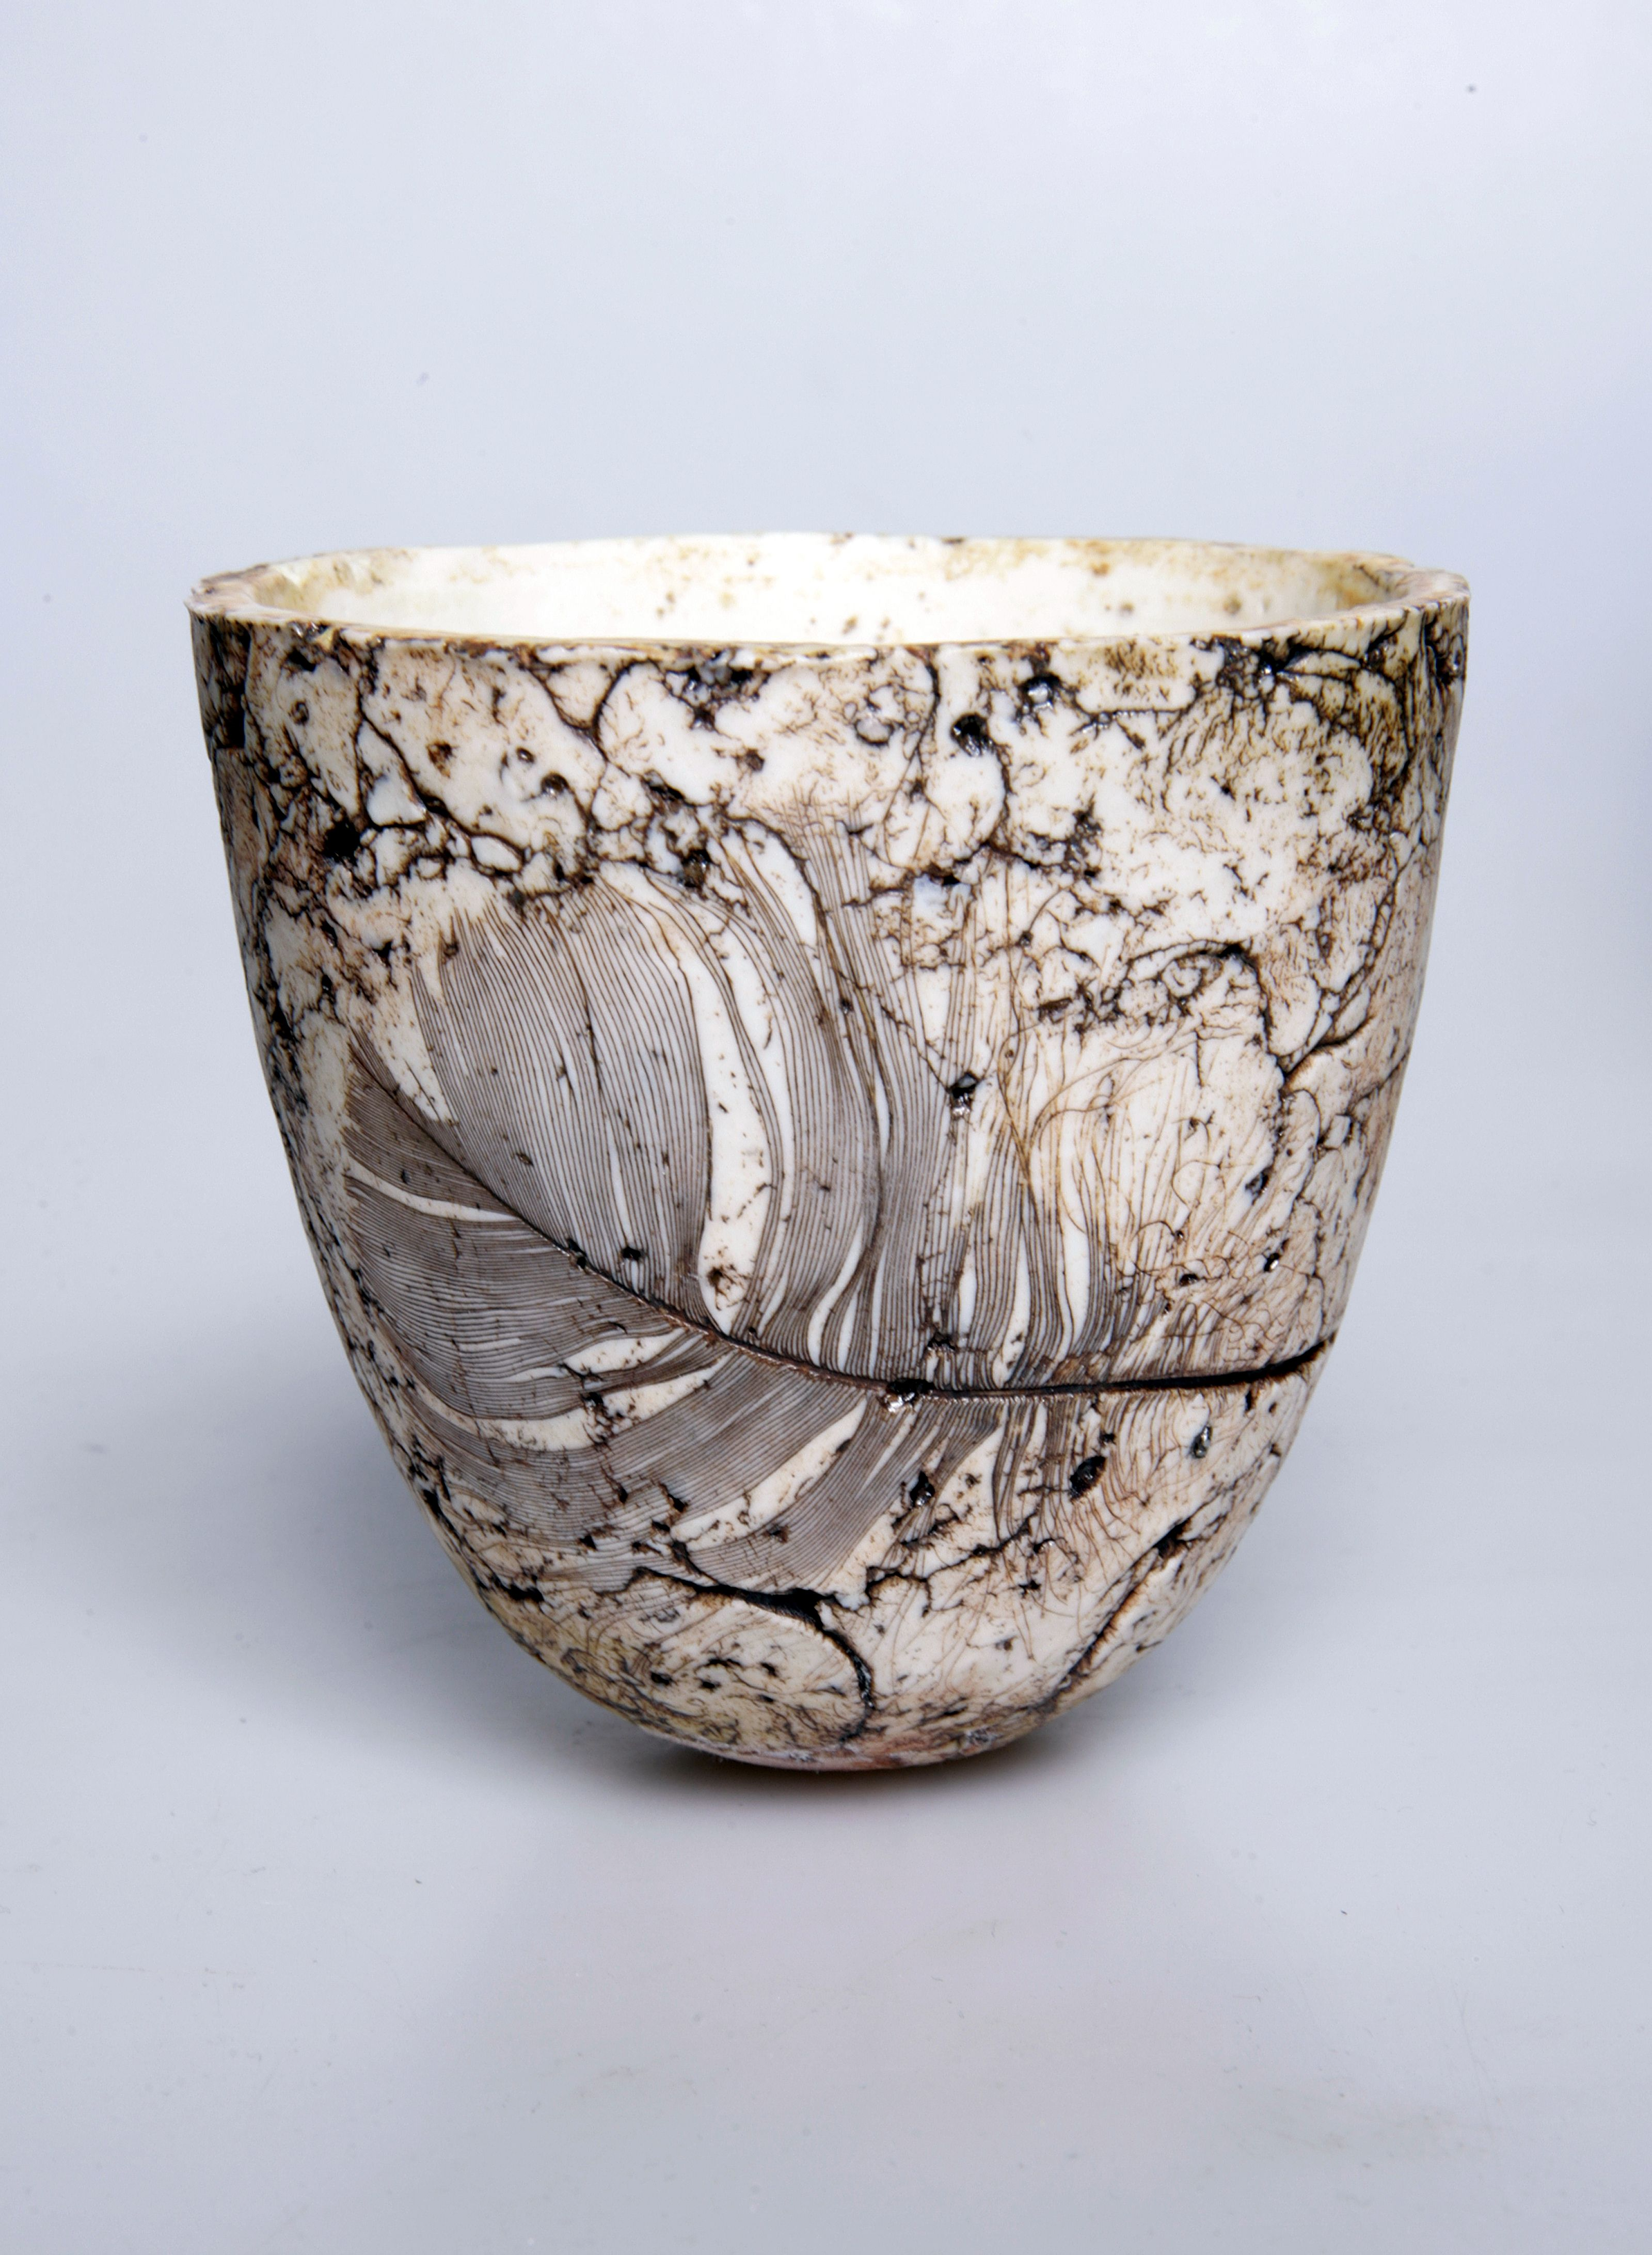 This Would Be A Cool Subtle Design For Furniture Ceramic Pottery Ceramics Pottery